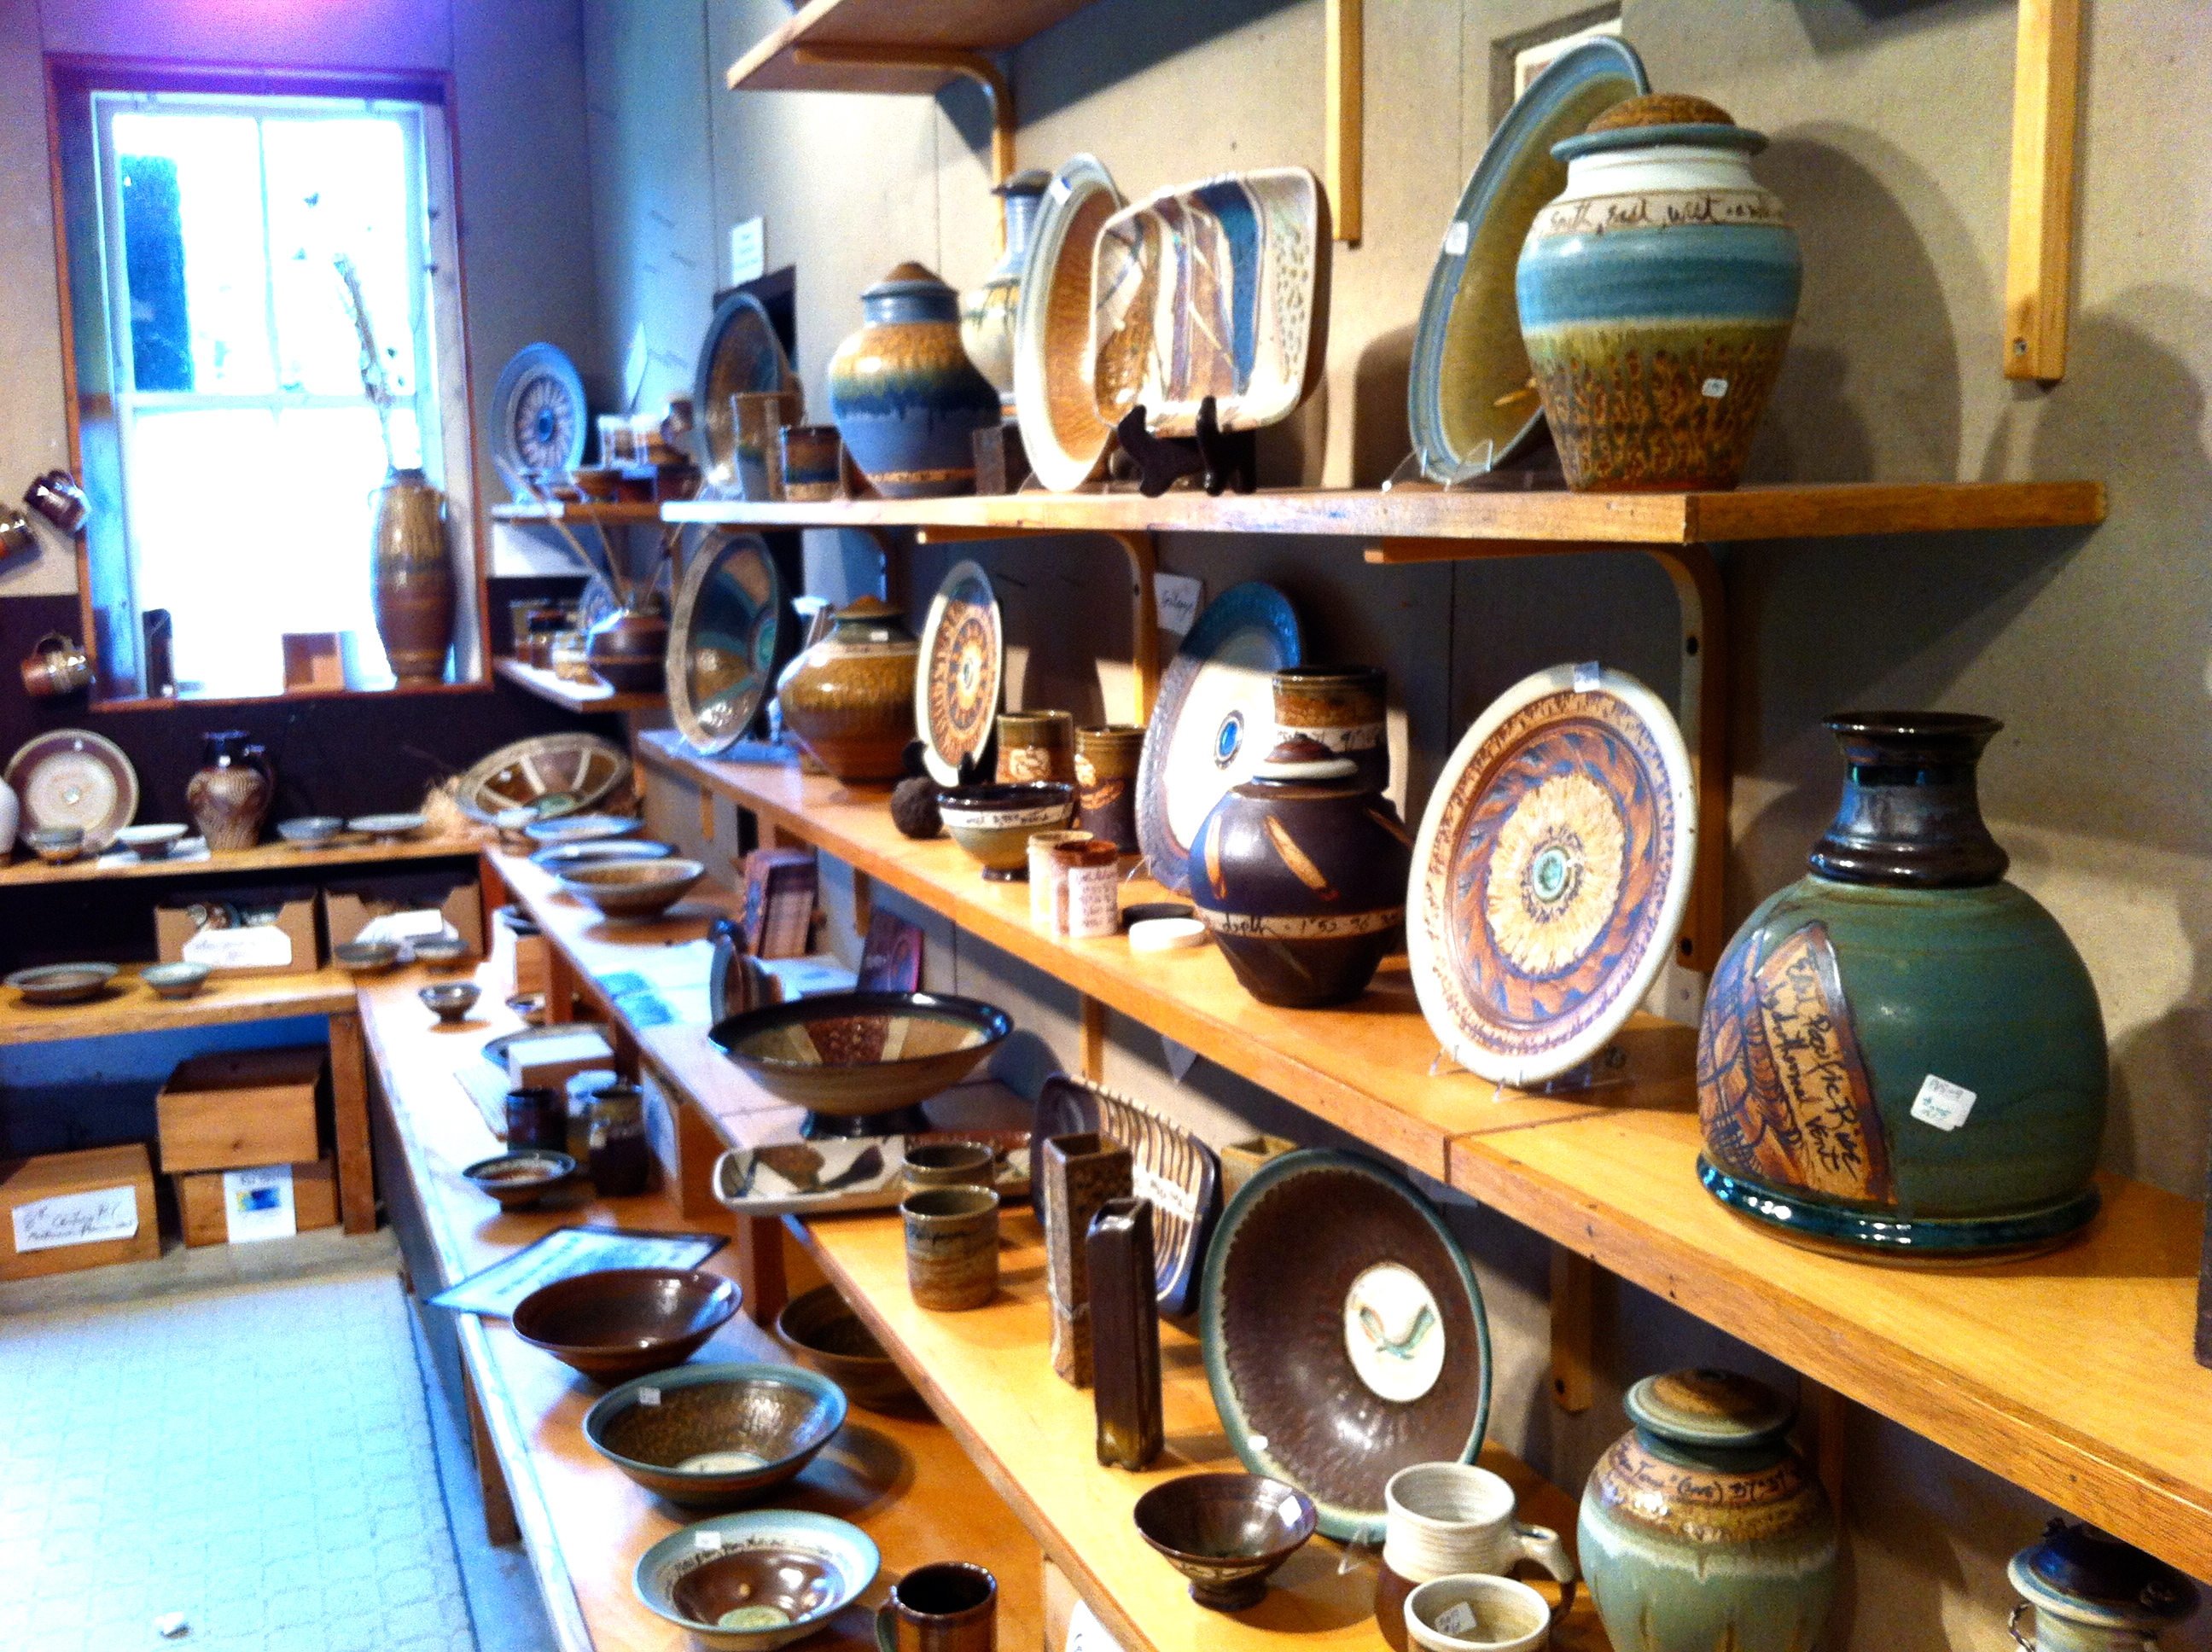 Pottery studio in Woods Hole